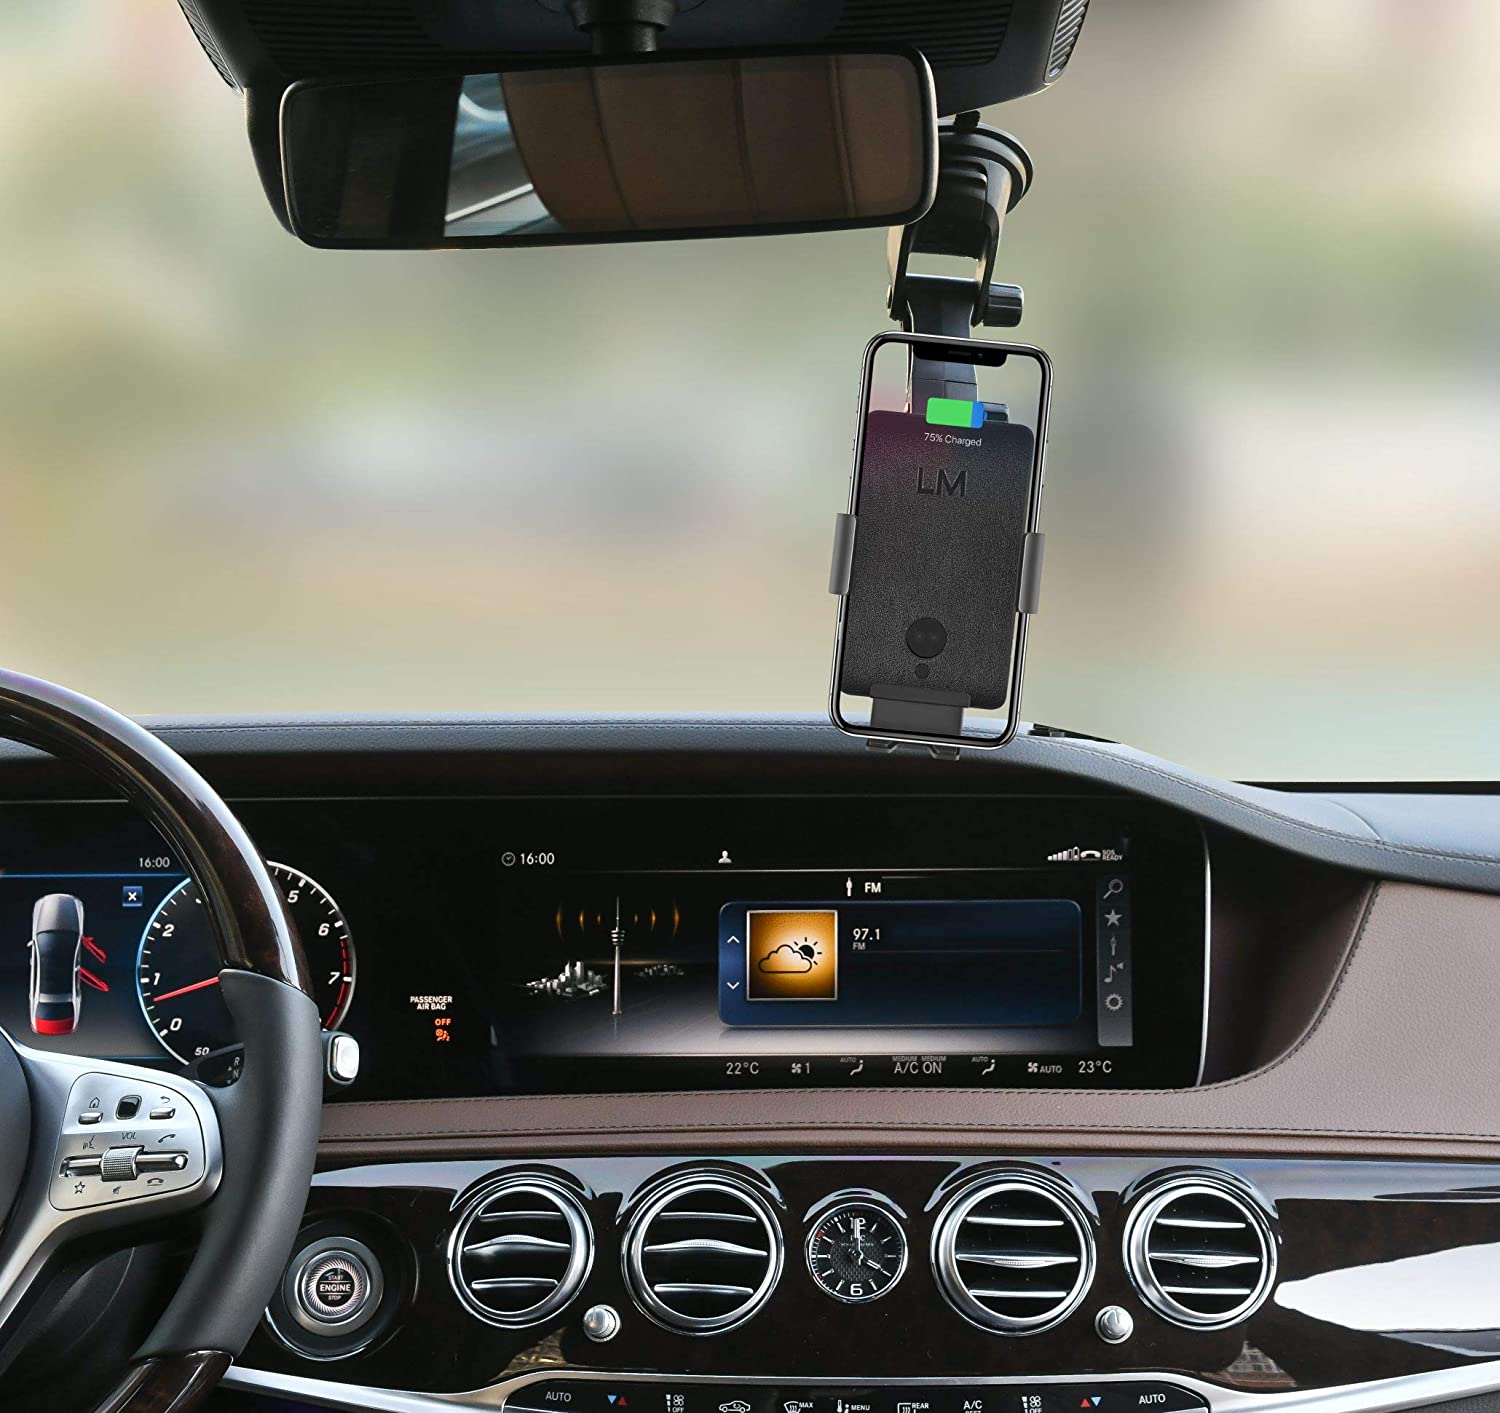 Note etc. Car Phone Mount 10W//7.5W QI Wireless Fast Charging Air Vent Phone Holder Louise/&Mann Wireless Car Charger Windshield,Dash with Auto Clamping for iPhone 11,Pro Max,Xs,XR,8,Samsung S10,Plus